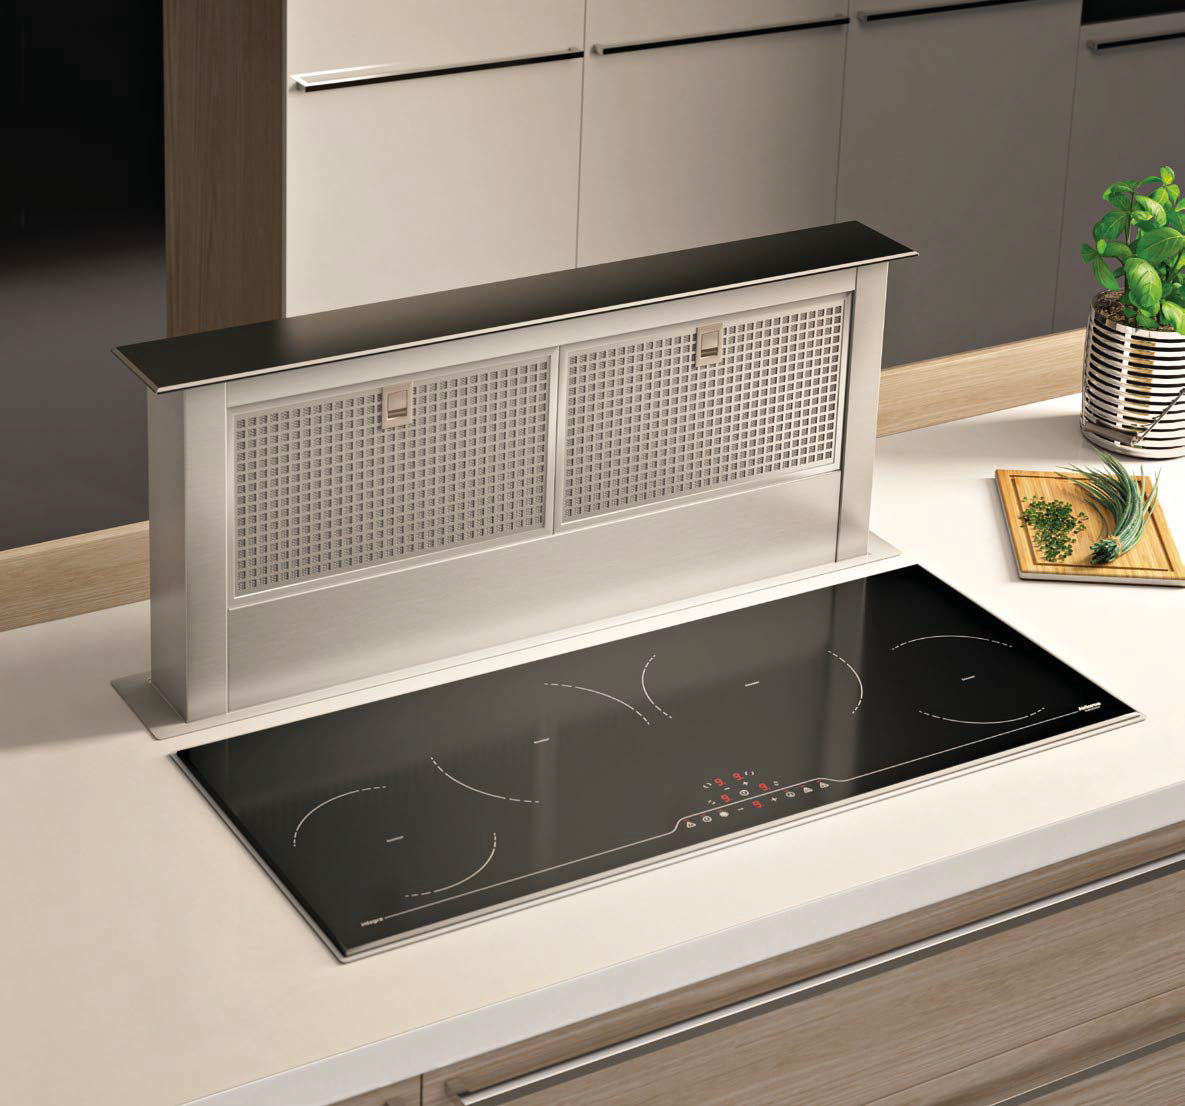 86cm Popup Downdraft Extractor & Induction Hob - Airforce Integra DD - Extraction